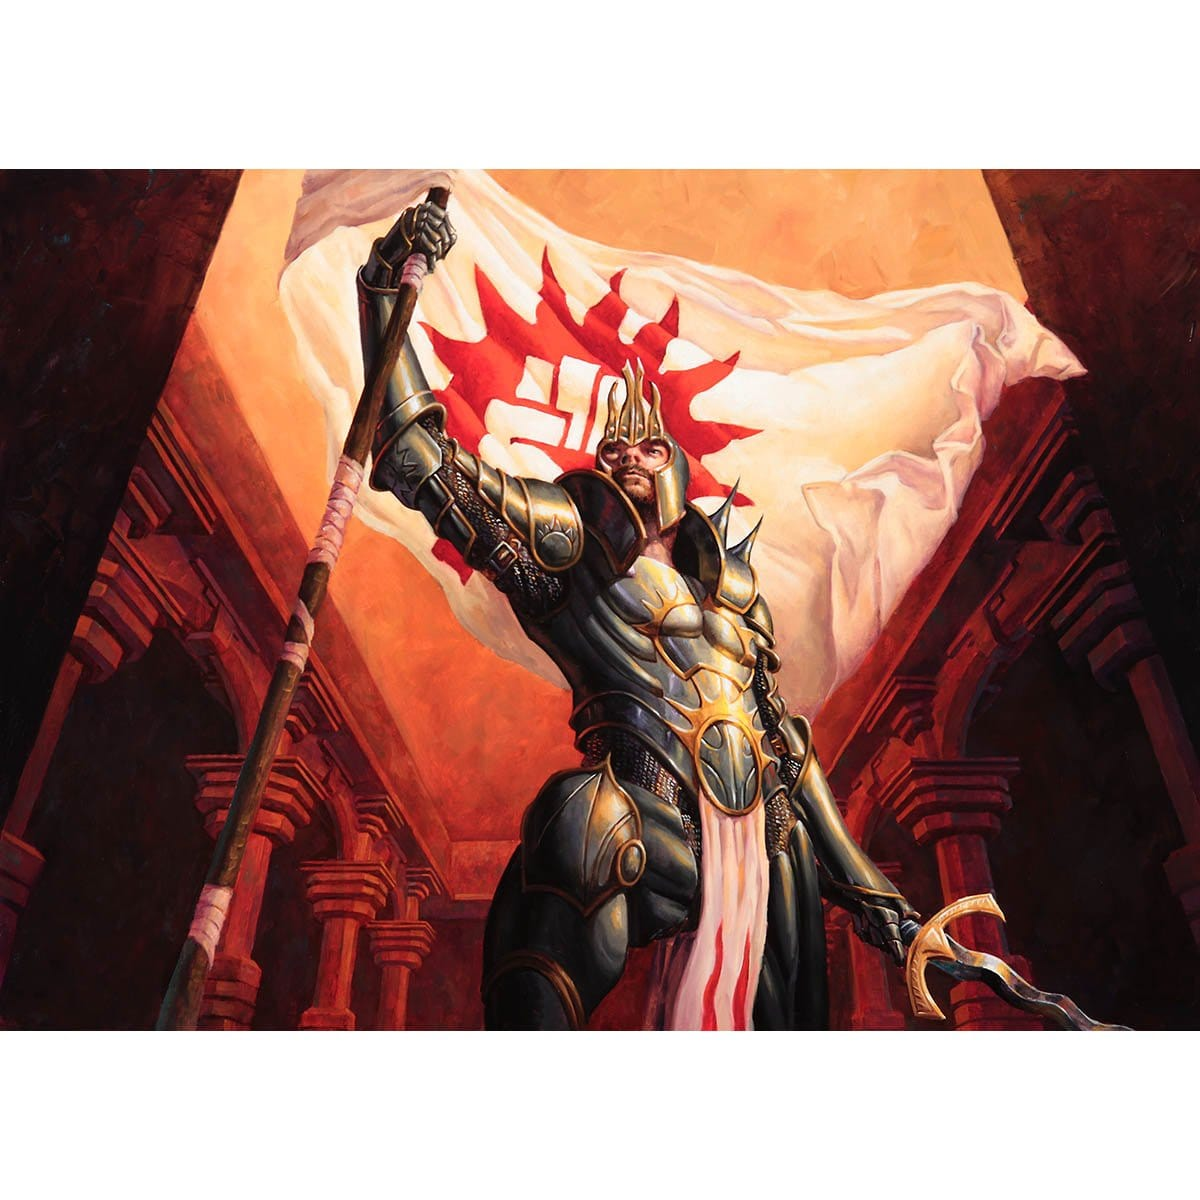 Truefire Paladin Print - Print - Original Magic Art - Accessories for Magic the Gathering and other card games